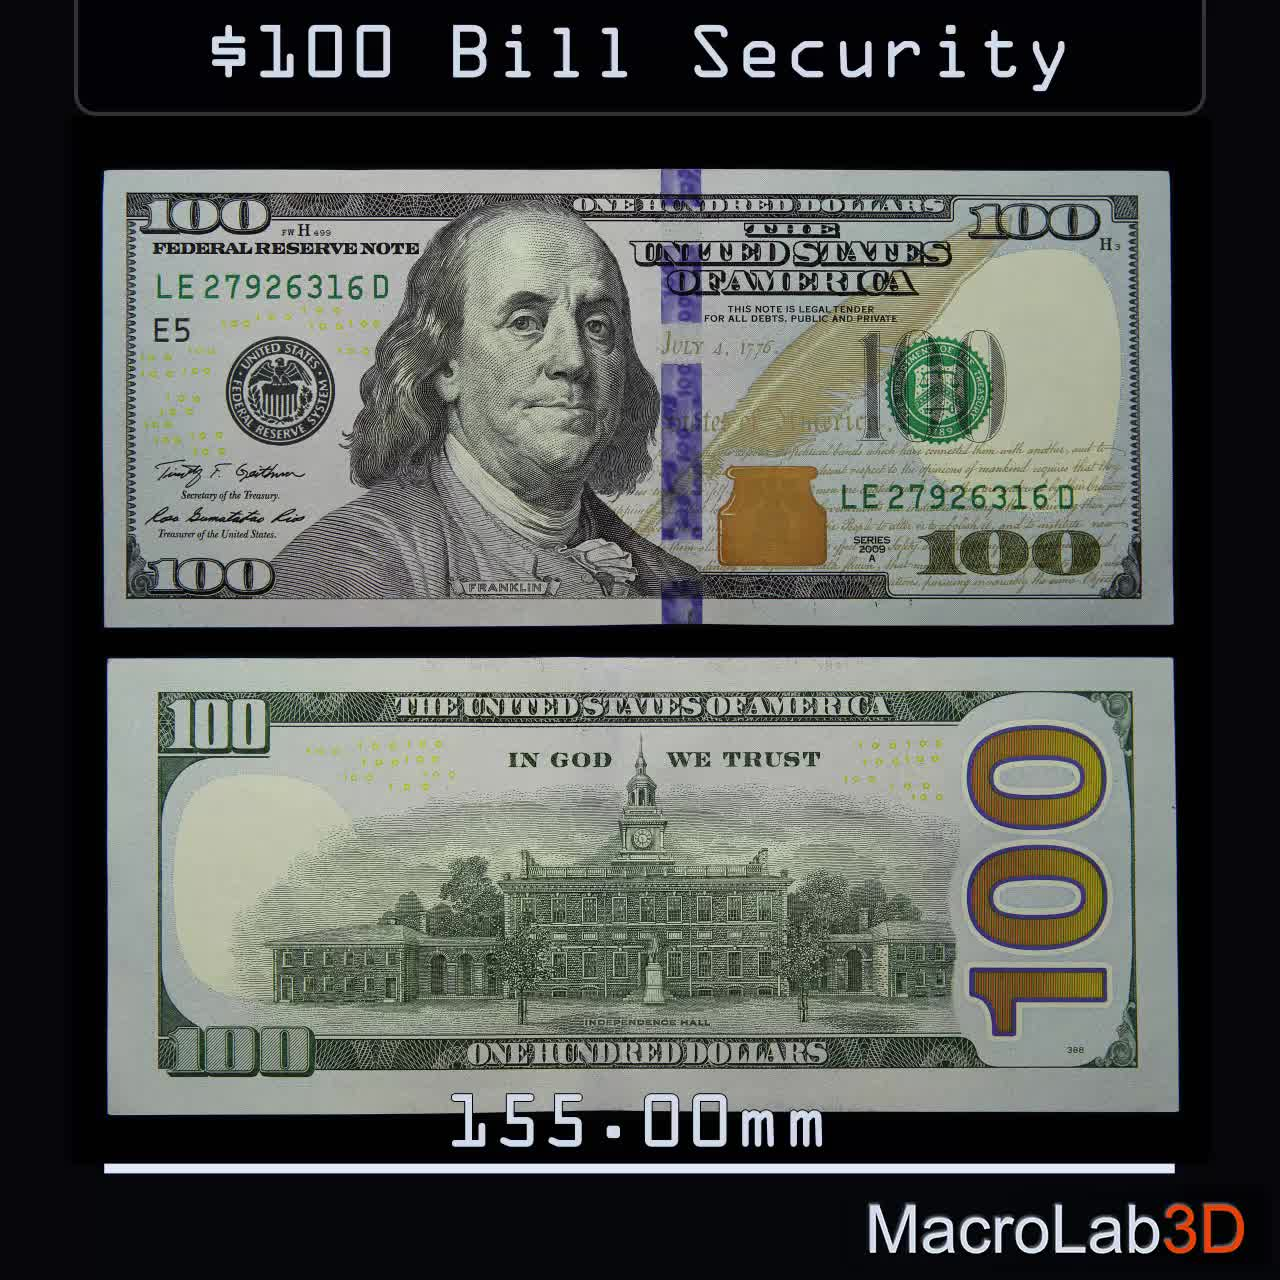 $100, 100USD, 3D, Watermark, macro, security features, under UV, Security Features Of The $100 Bill GIFs